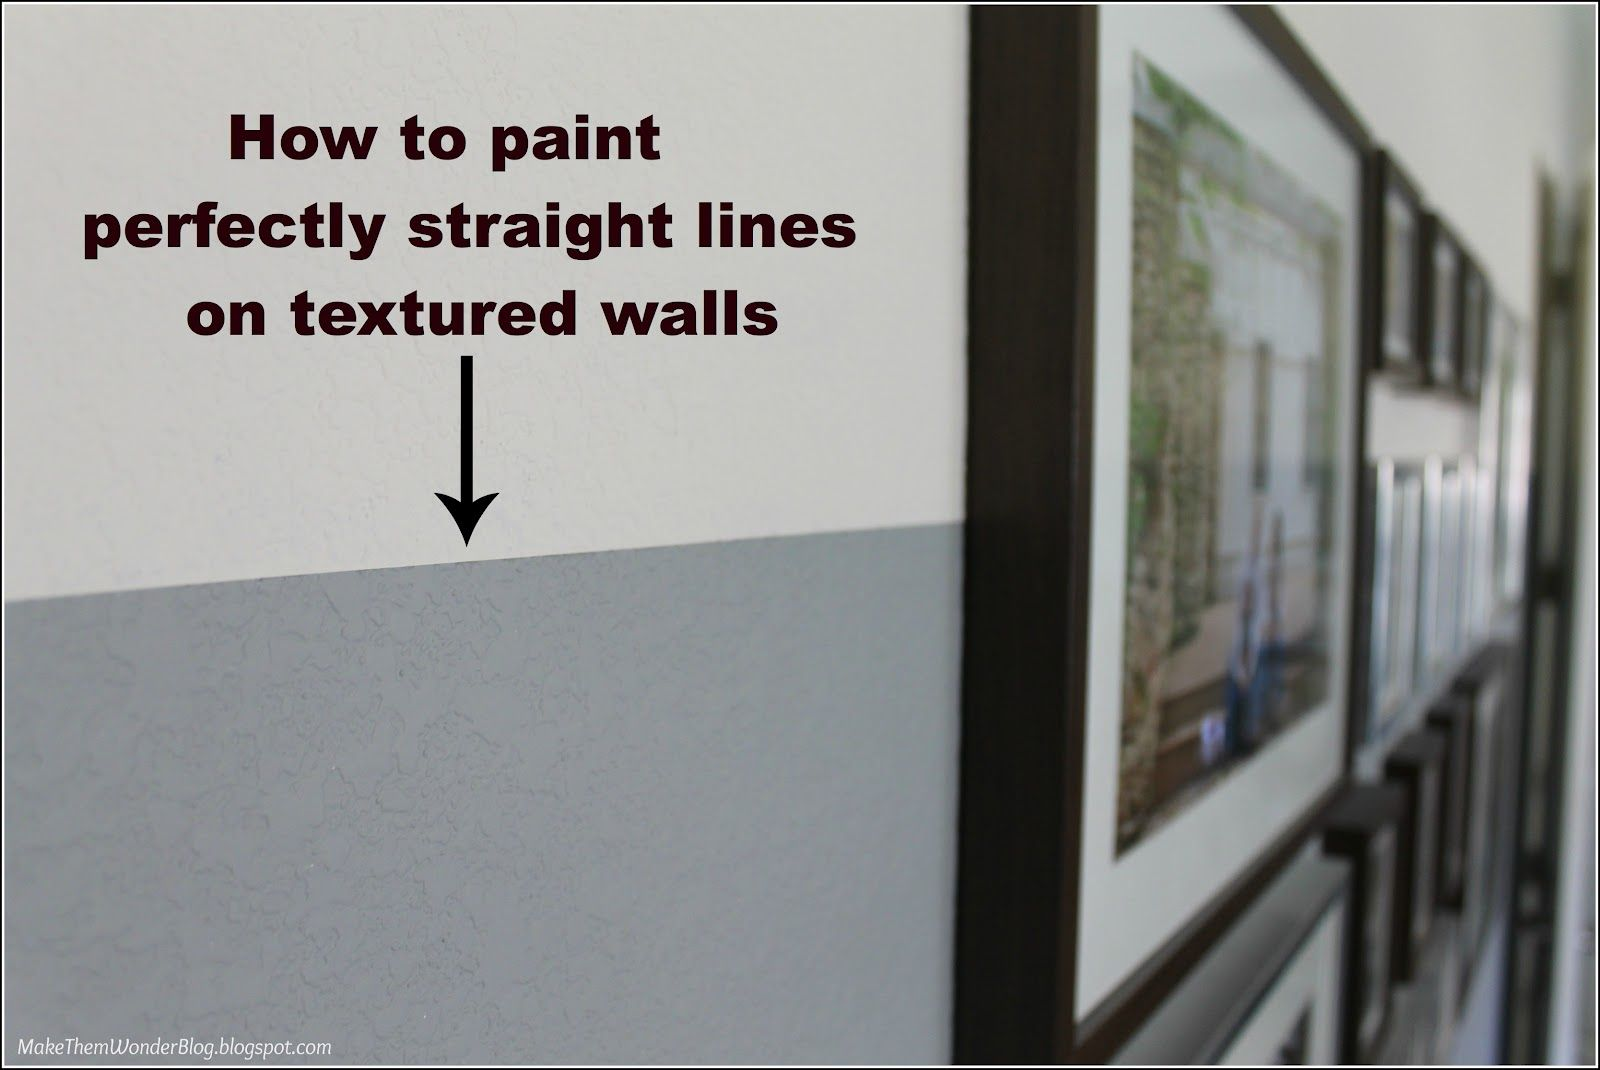 Make Them Wonder How to paint straight lines on textured walls